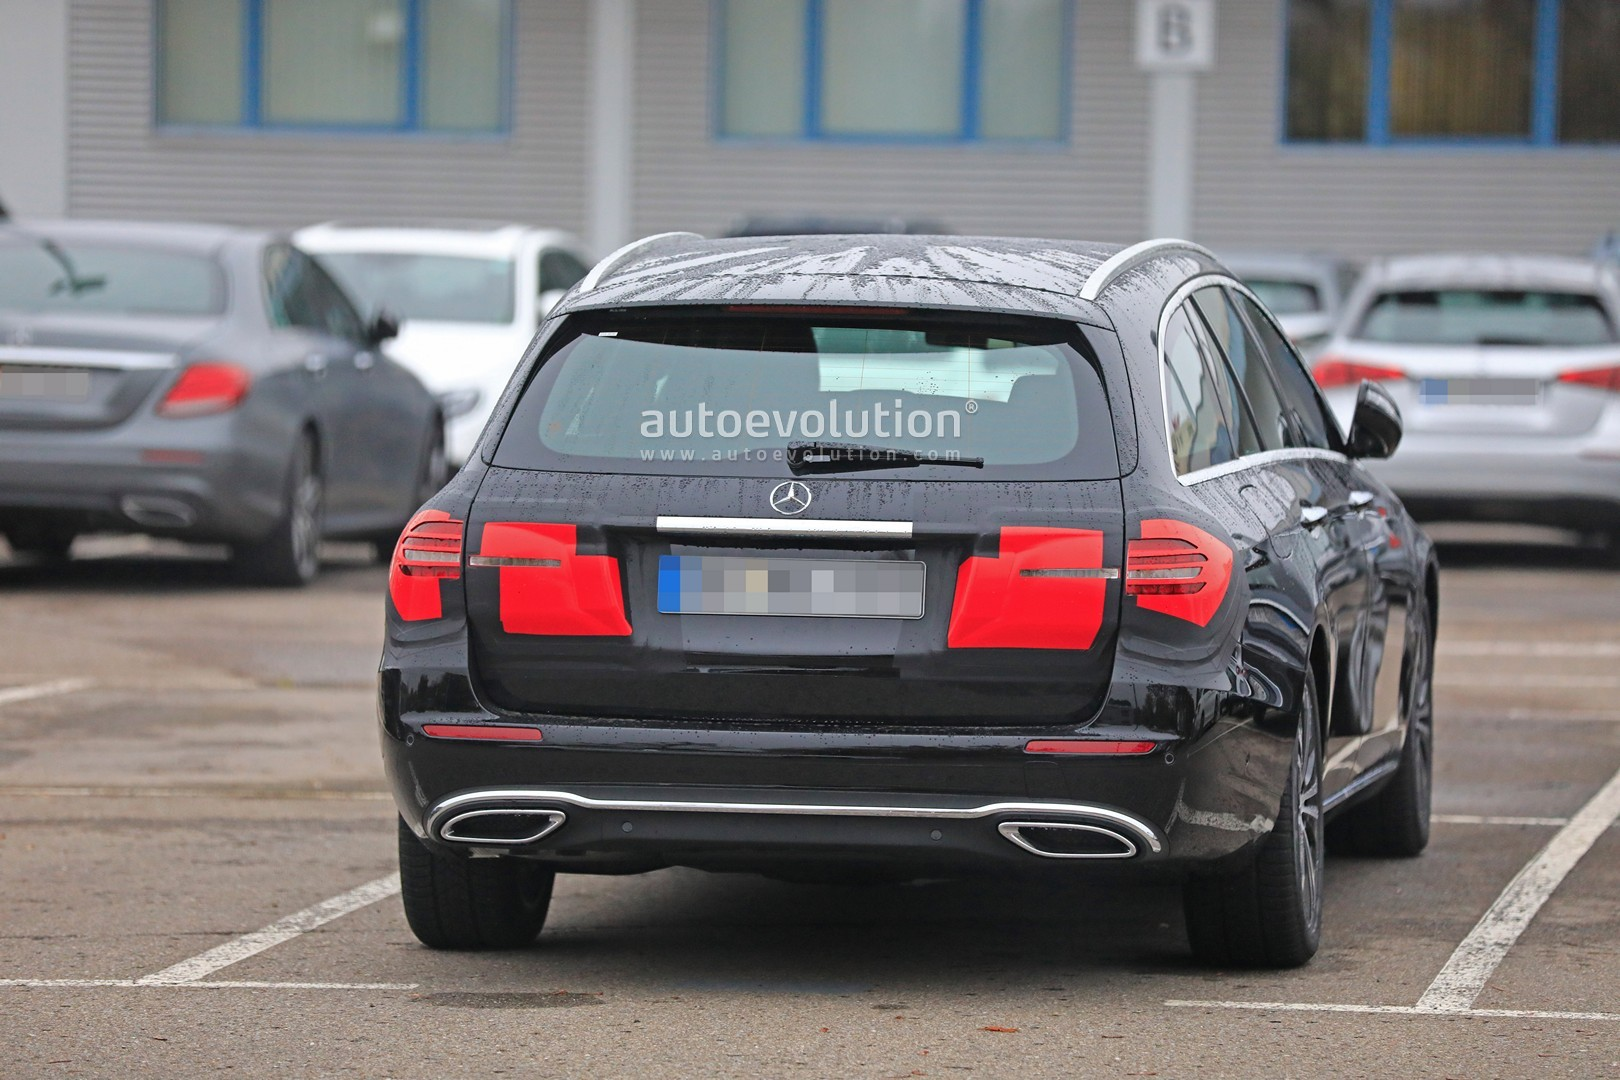 2020 - [Mercedes-Benz] Classe E restylée  2020-mercedes-e-class-spied-is-getting-a-new-face-inspided-by-cls-class_7